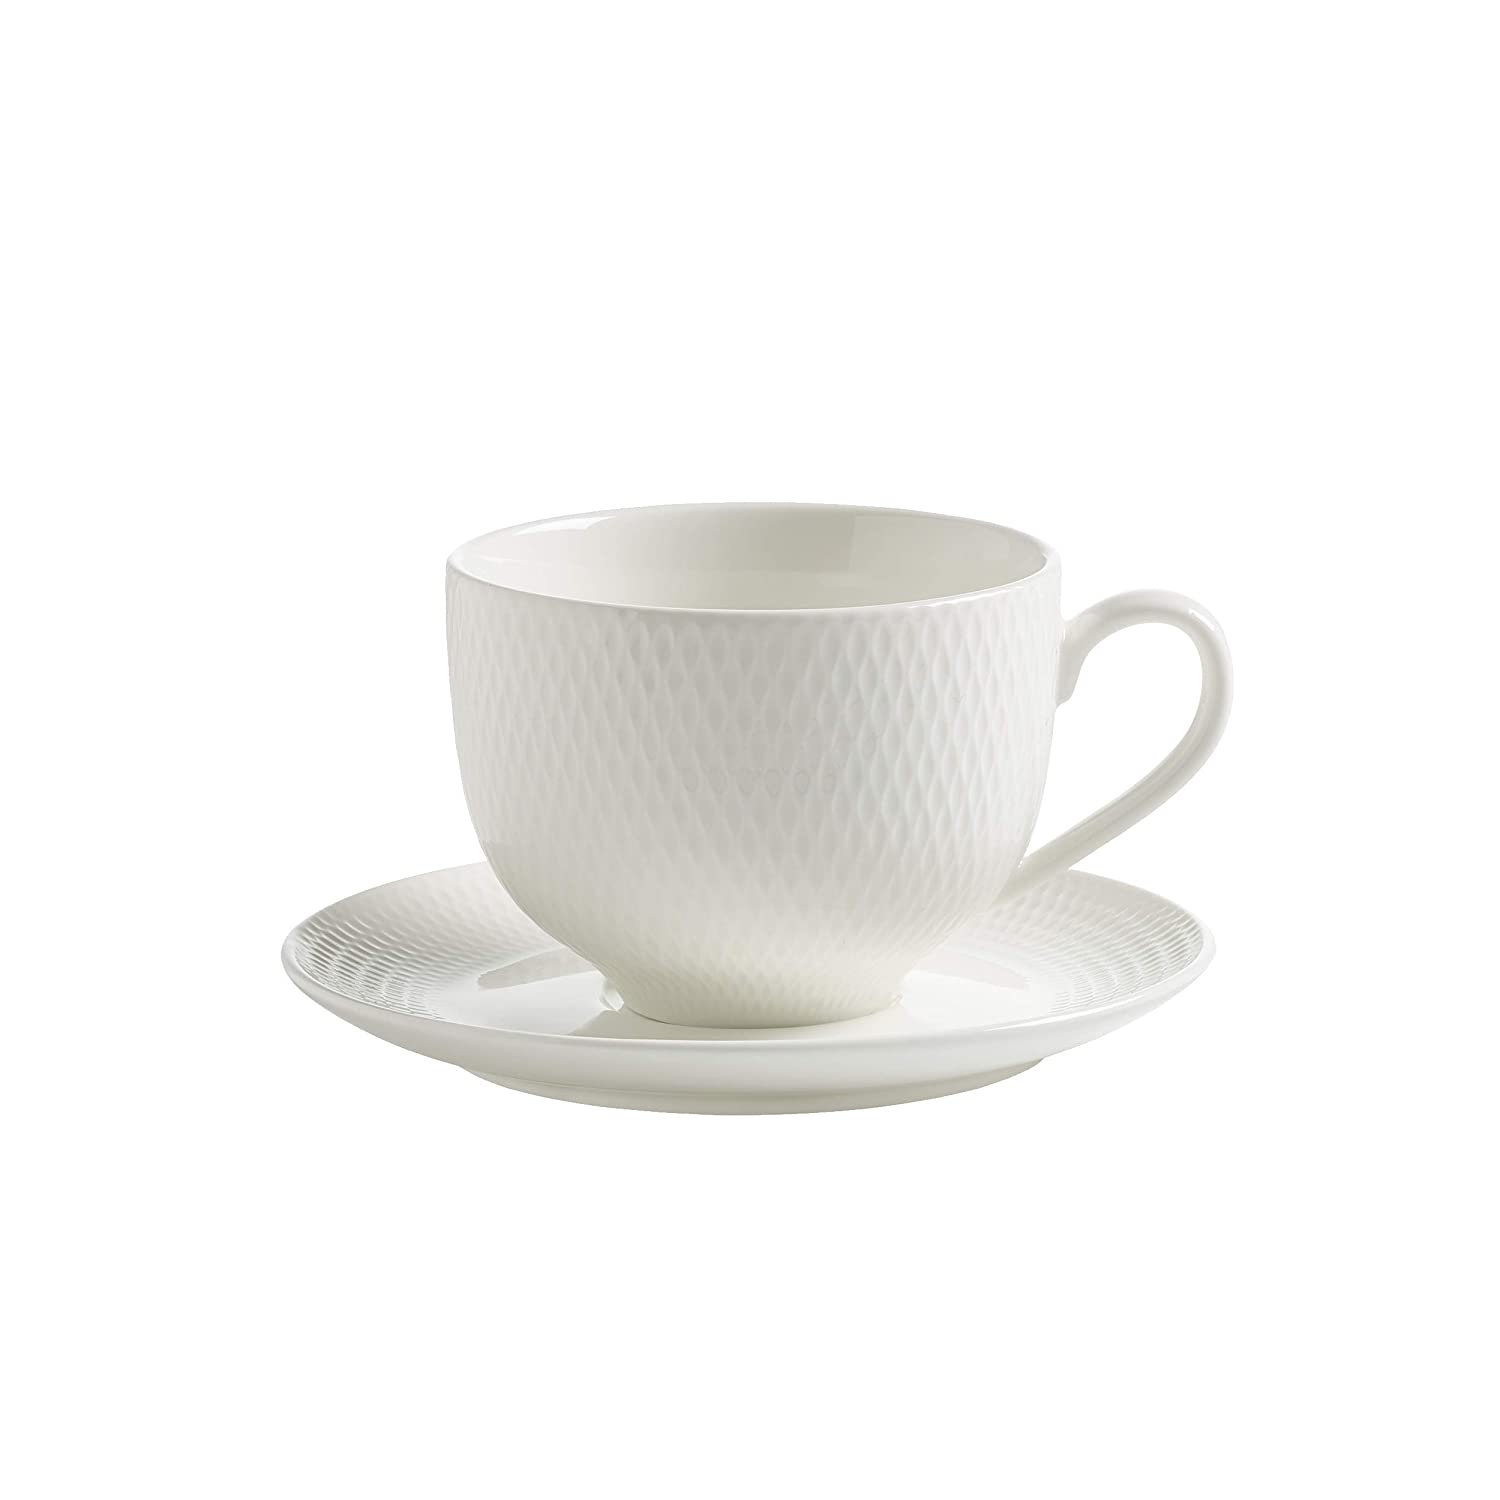 183127897c Maxwell & Williams Basics Diamonds DV0028 Tea Cup and Saucer, Porcelain,  White, 220 ml: Amazon.co.uk: Kitchen & Home